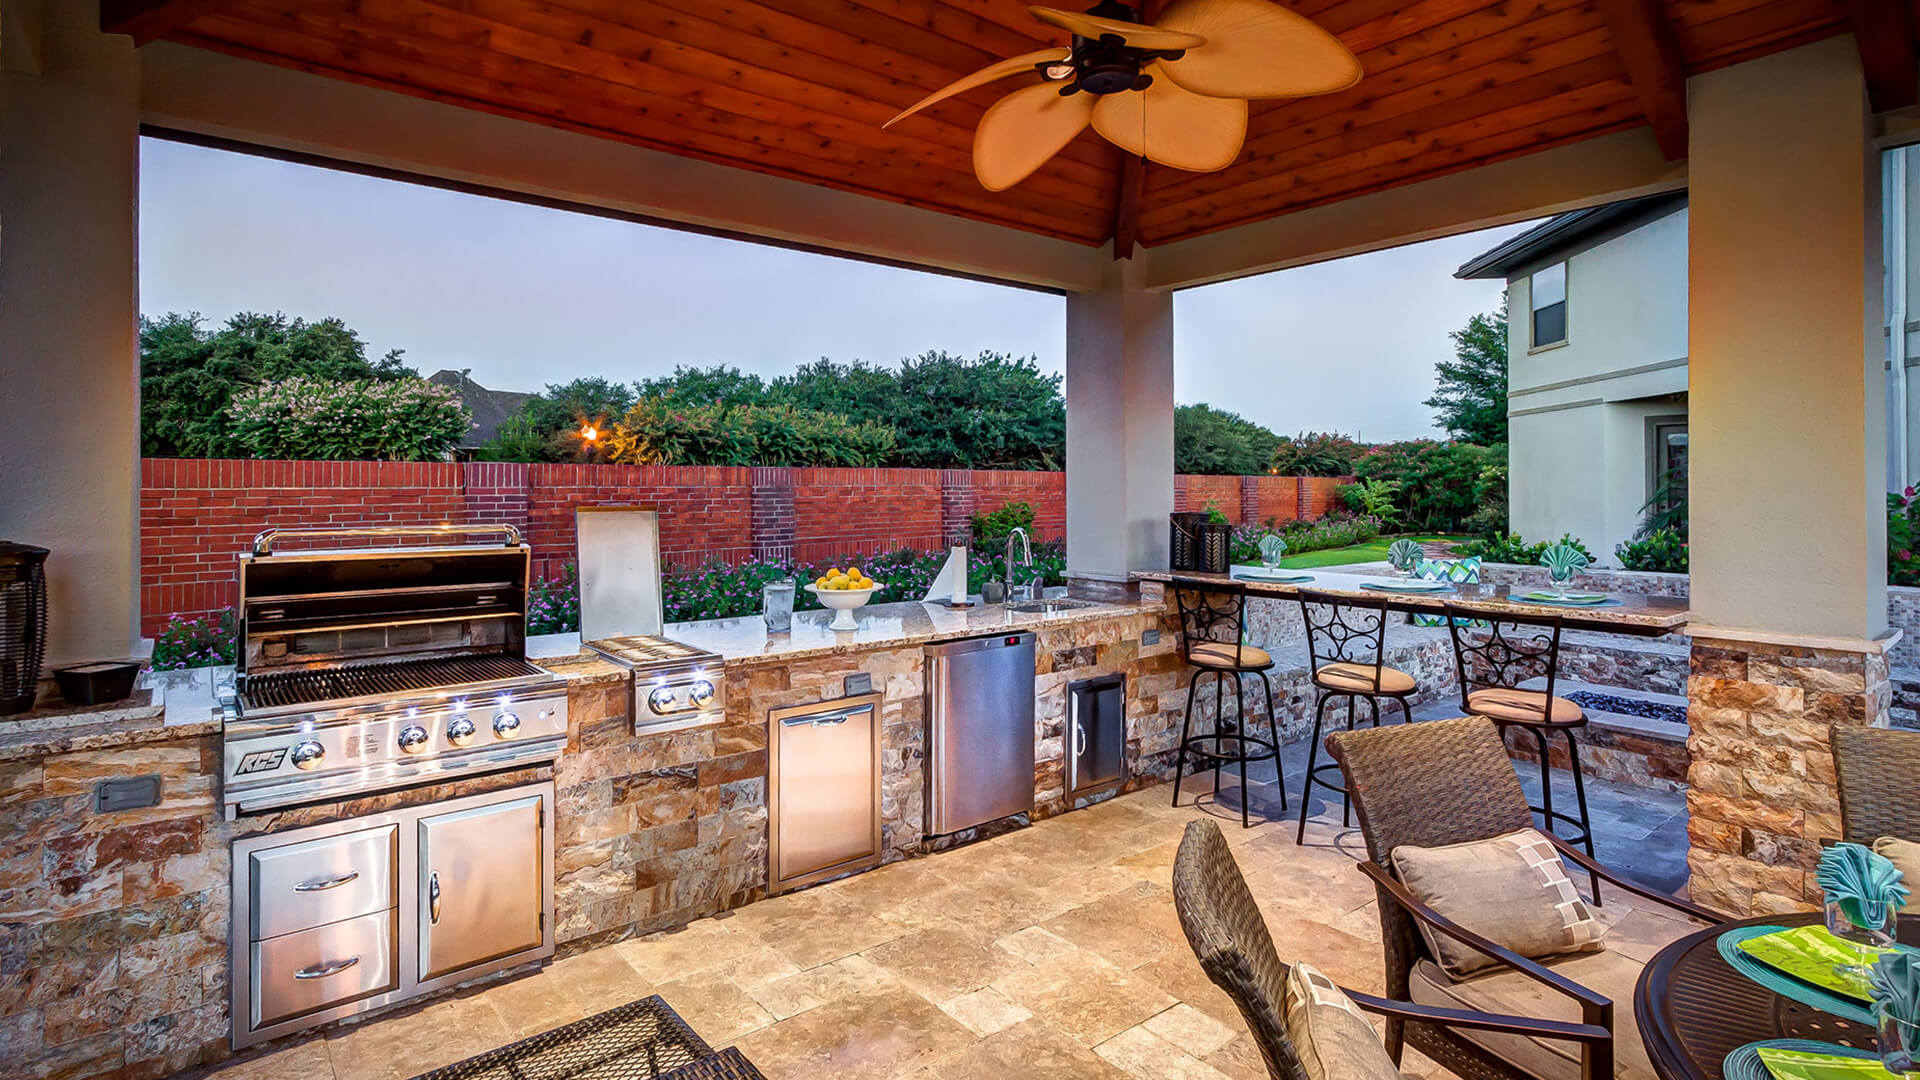 Custom Outdoor Kitchen and Cabana - Kitchen view by Creekstone Outdoor Living in Houston Texas